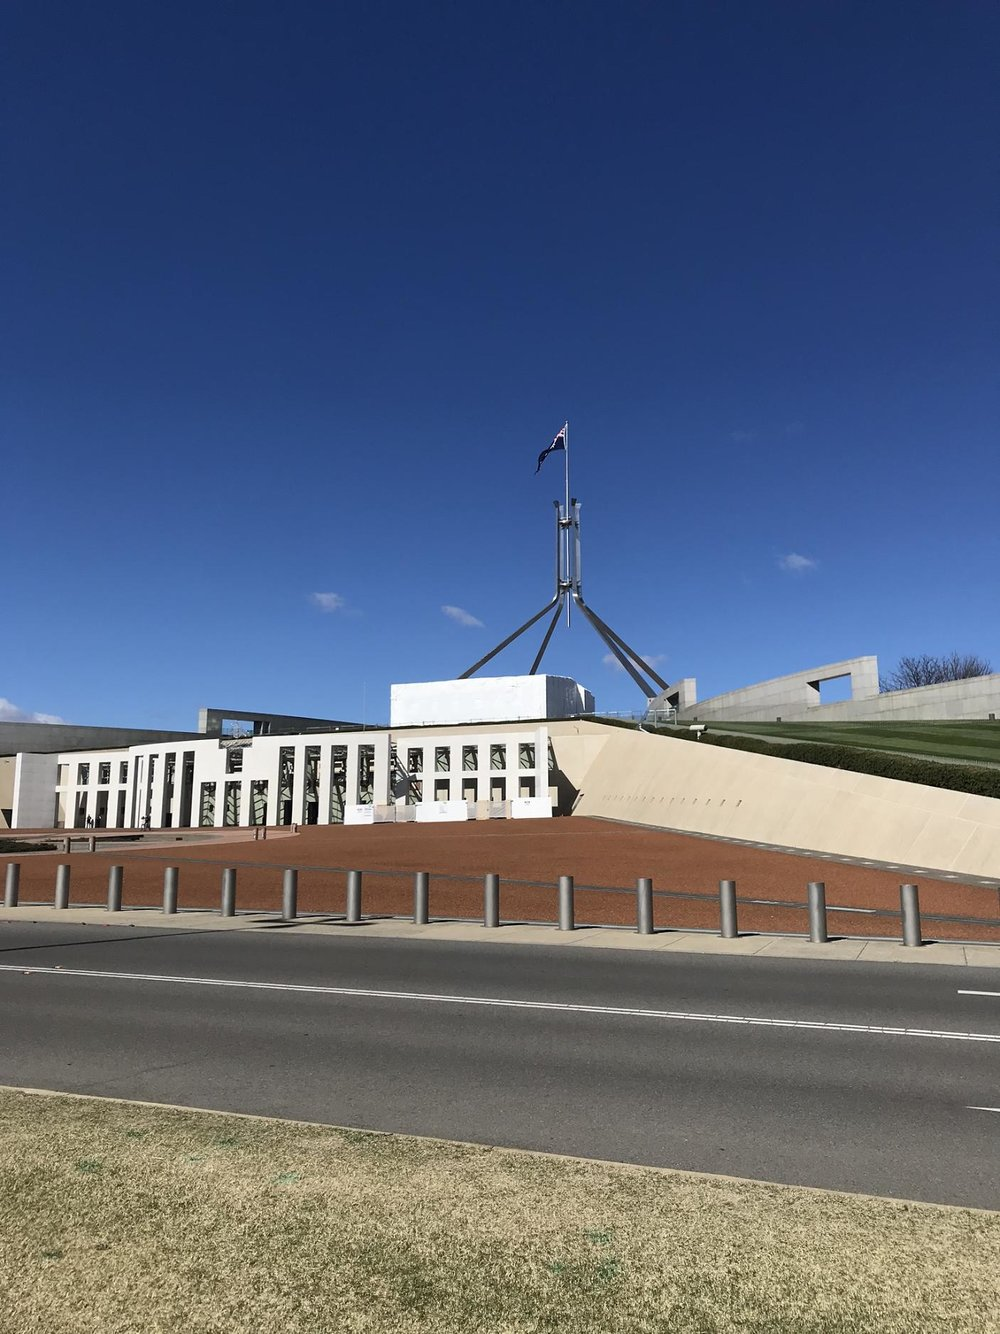 Weekend Guide to Canberra - What to See Parliament House Canberra.jpg